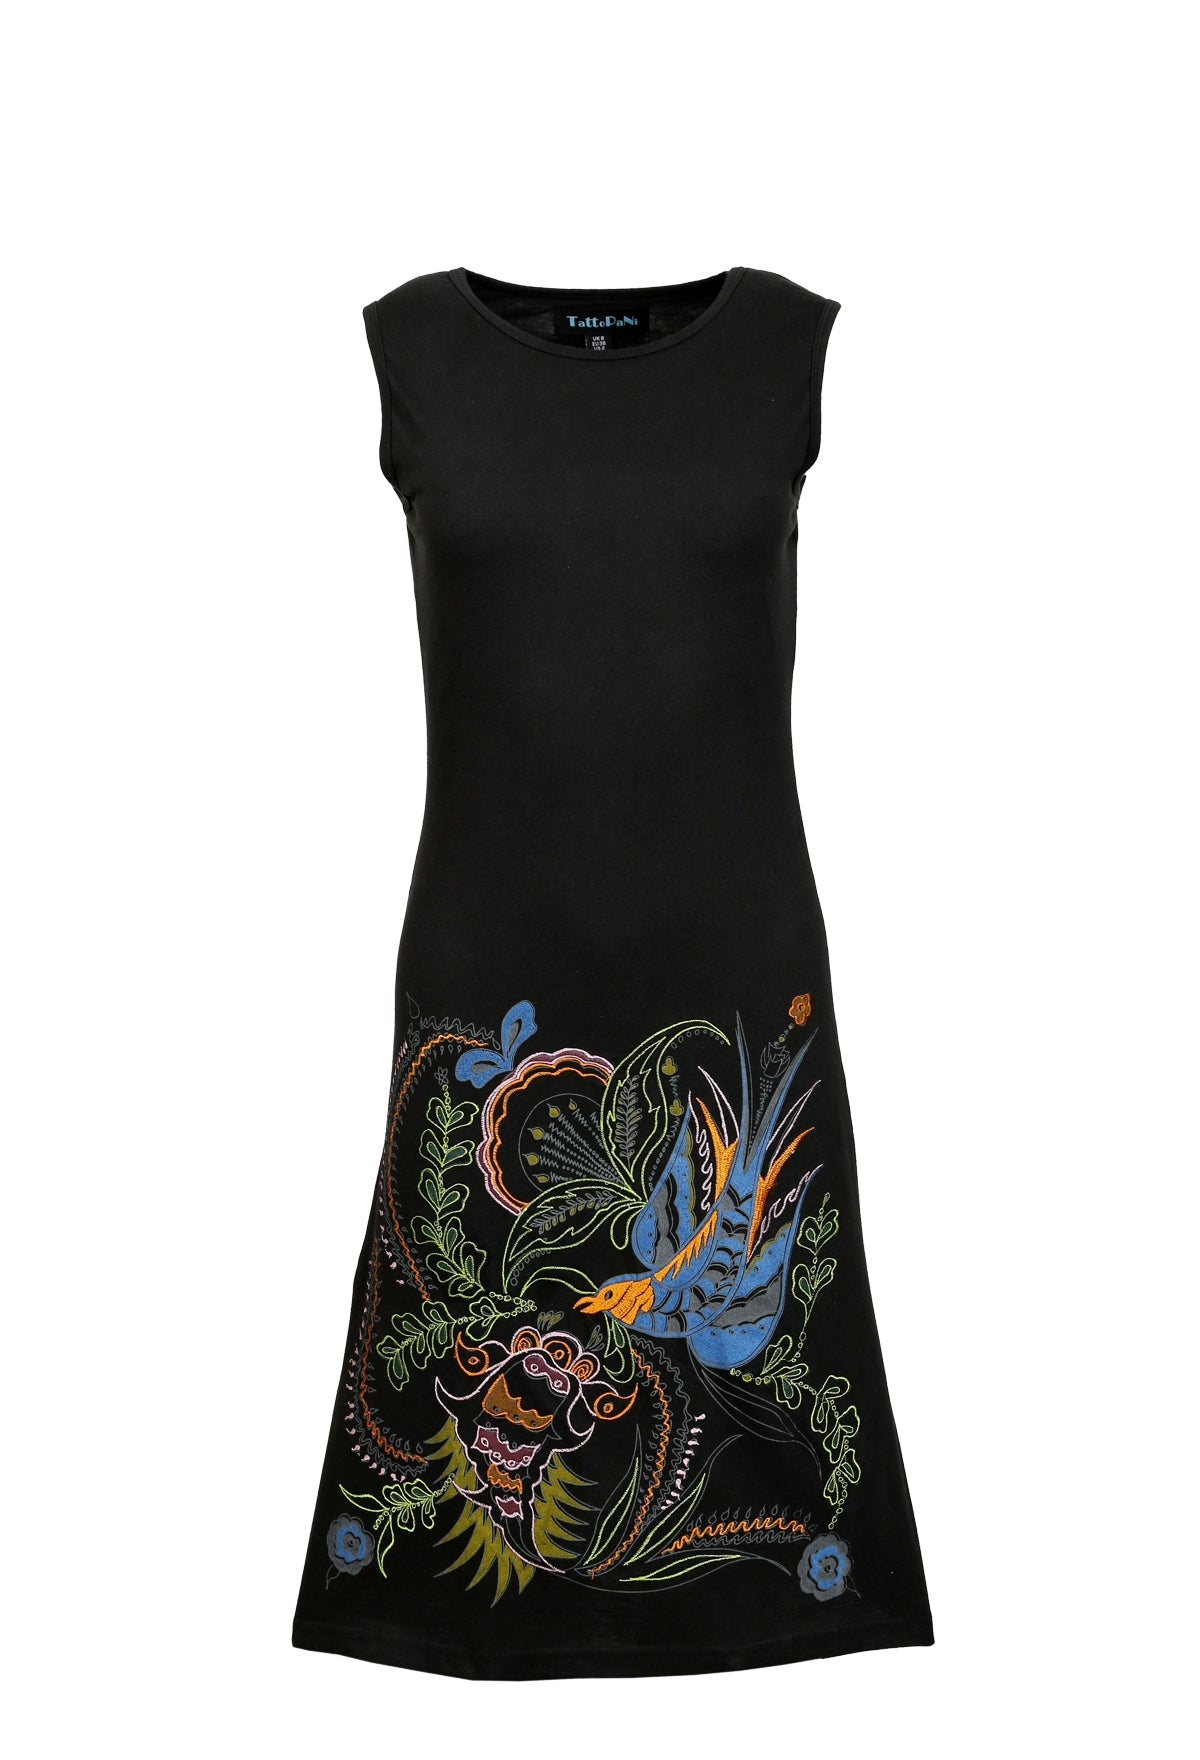 Ladies Summer Sleeveless Tunic Dress with Bird Embroidery - Craze Trade Limited